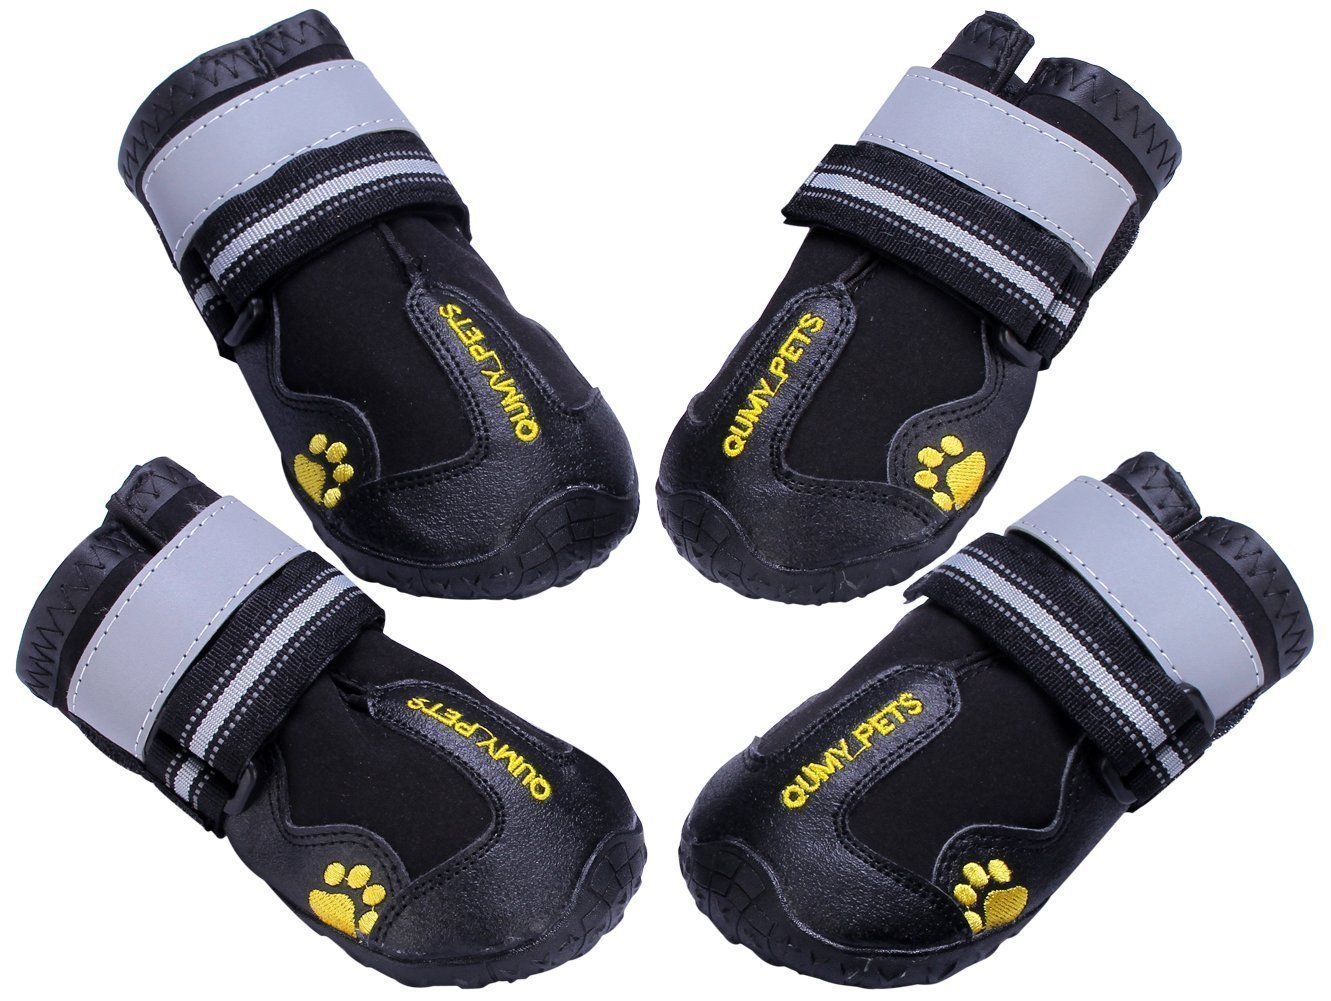 2. QUMY Dog Boots